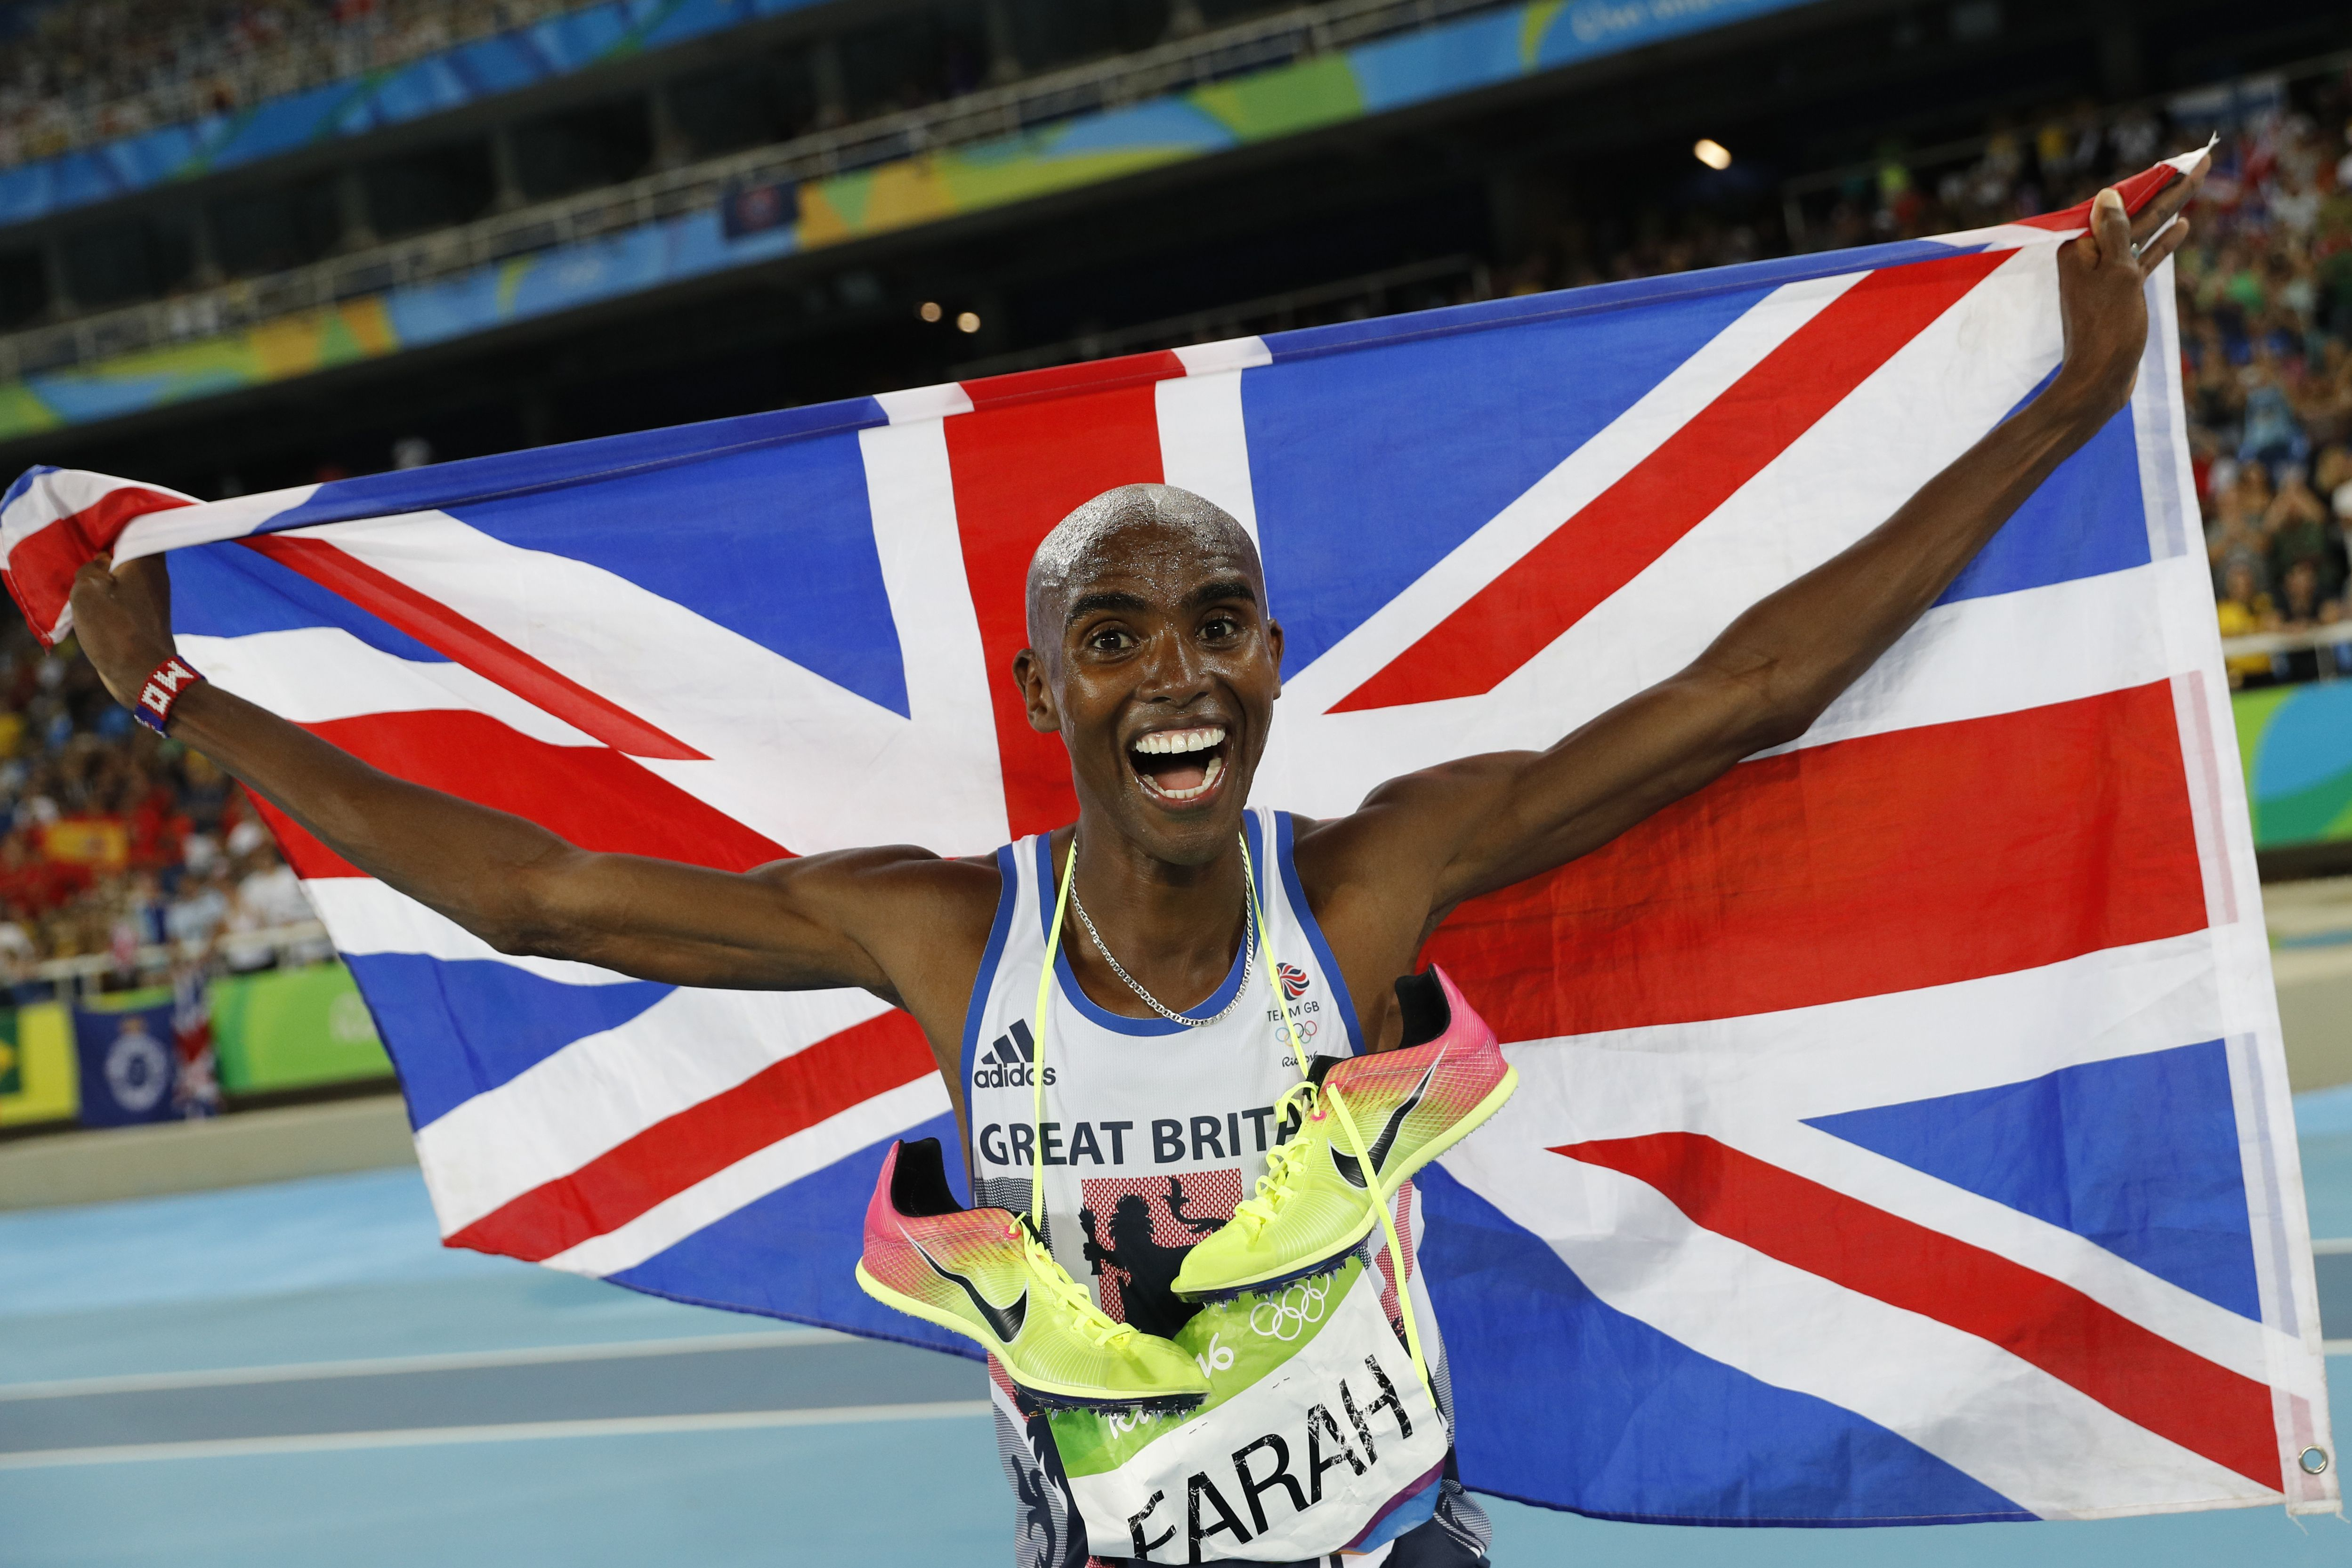 aae7d61065c1 Rio 2016  Watch an overjoyed Mo Farah s post-race interview as he  celebrates his fourth Olympics gold medal